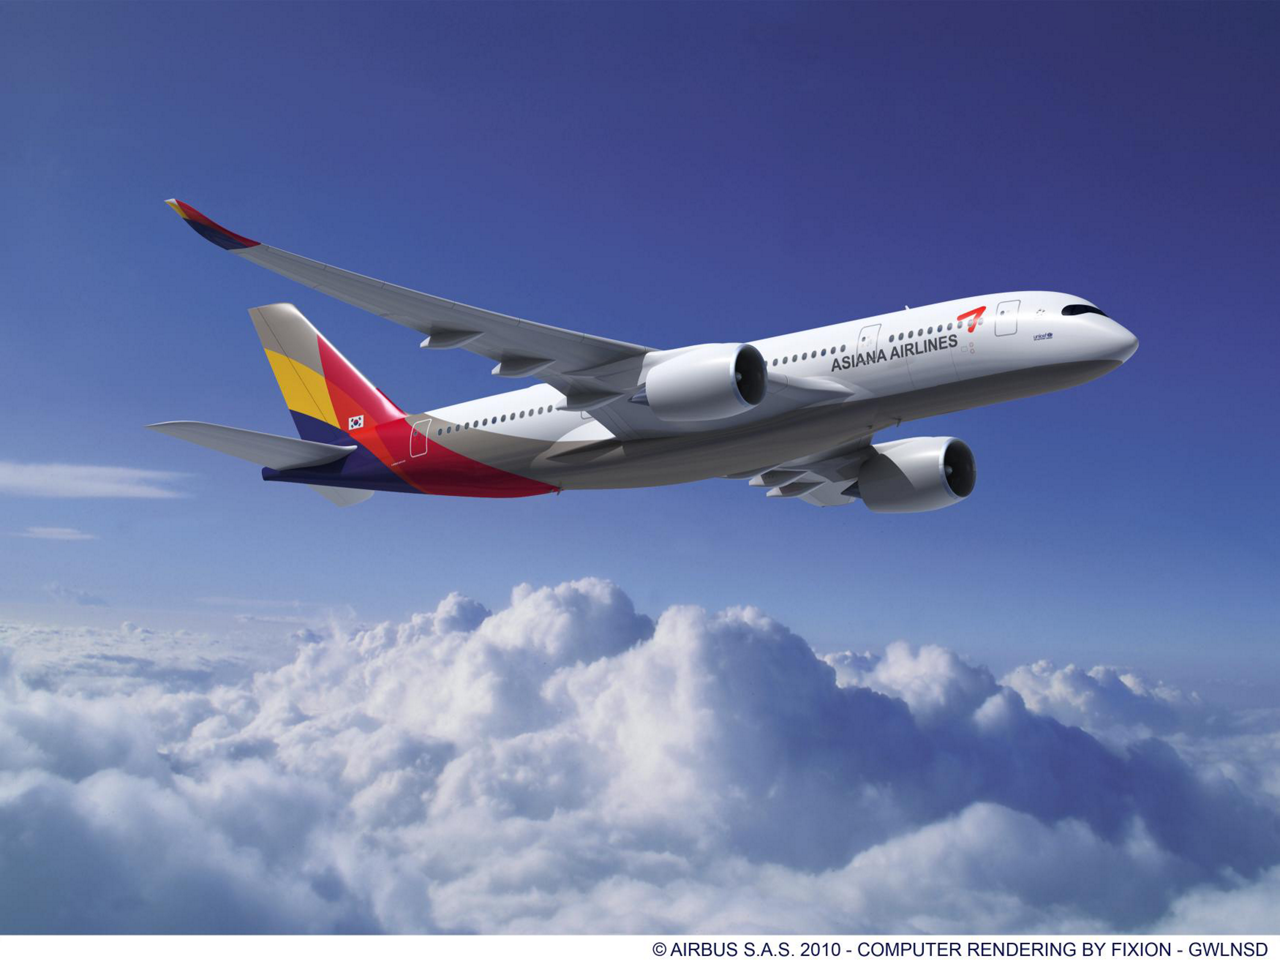 Asiana Airlines of South Korea has signed a contract with Airbus for the purchase of 30 A350 XWB aircraft, plus 10 options. The airline will take a combination of all three variants of the A350. Here the A350-800.